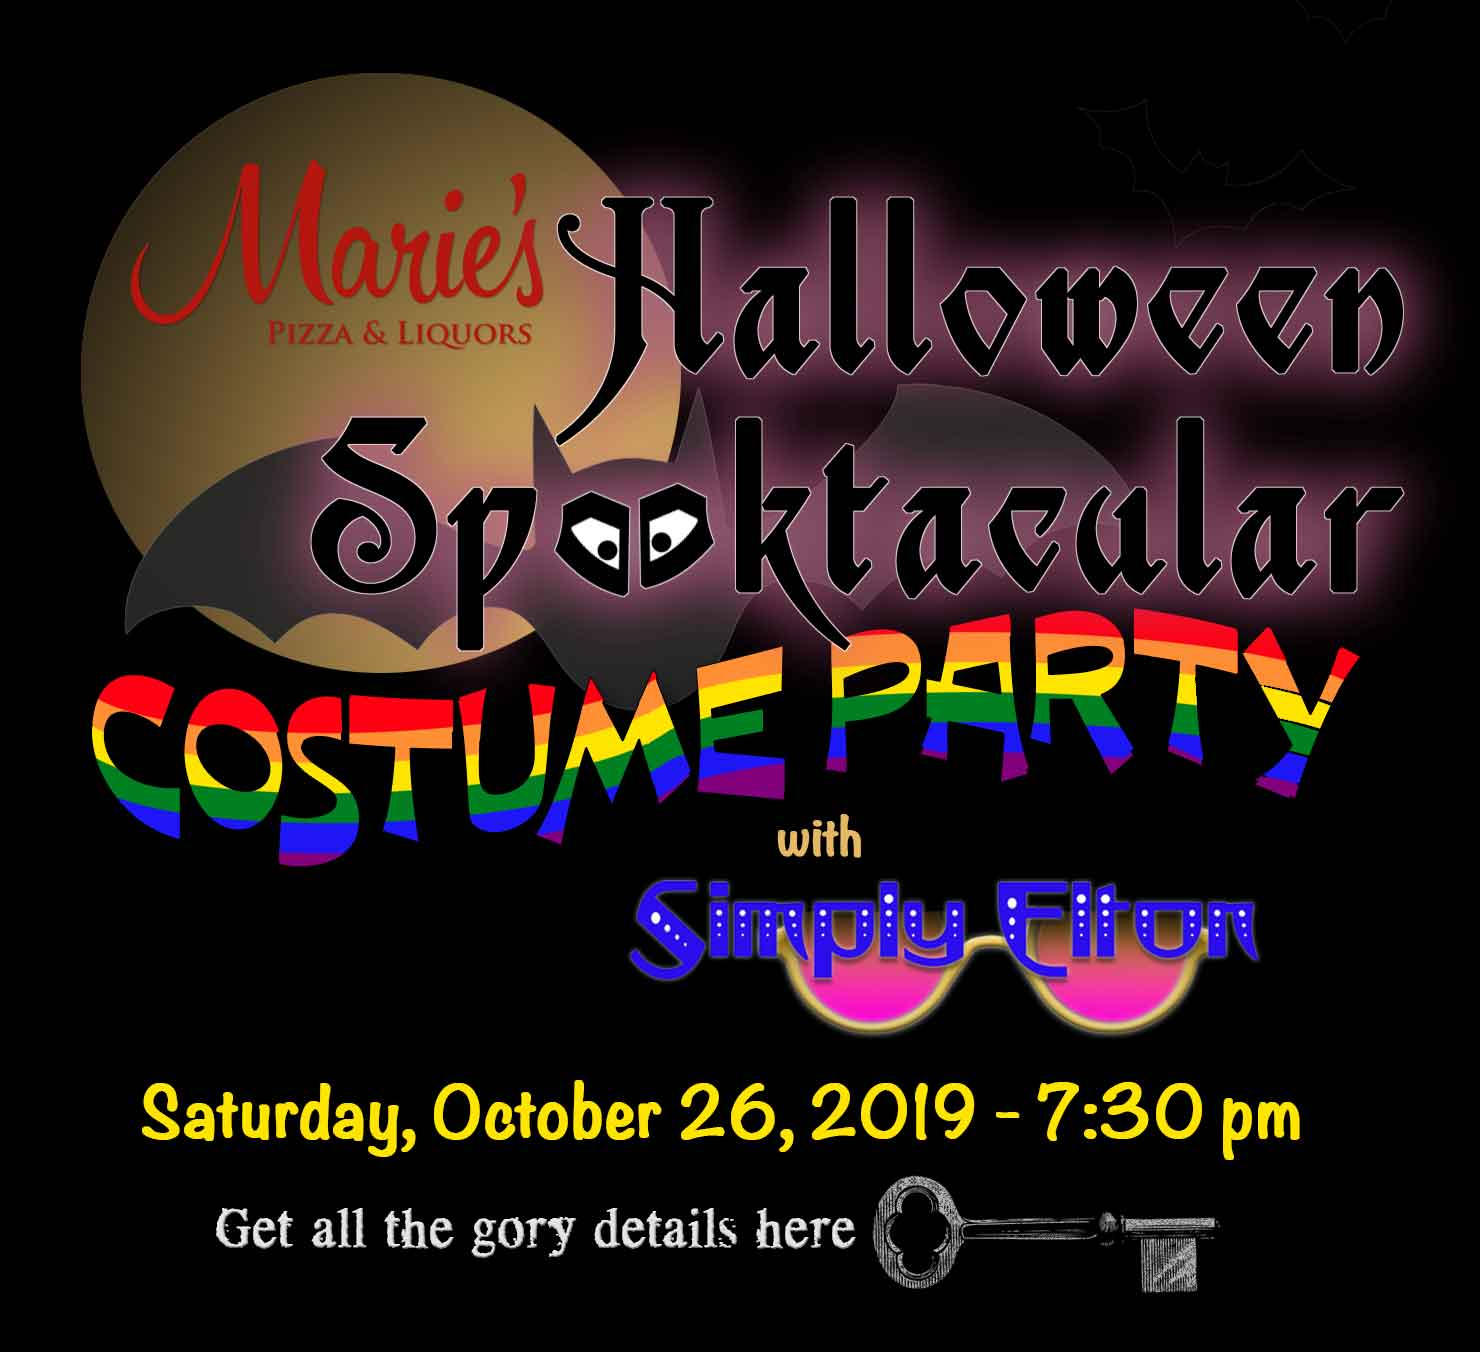 Marie's Pizza & Liquors presents a fabulous Concert in the Round with Simply Elton during our Halloween Spooktacular Costume Party